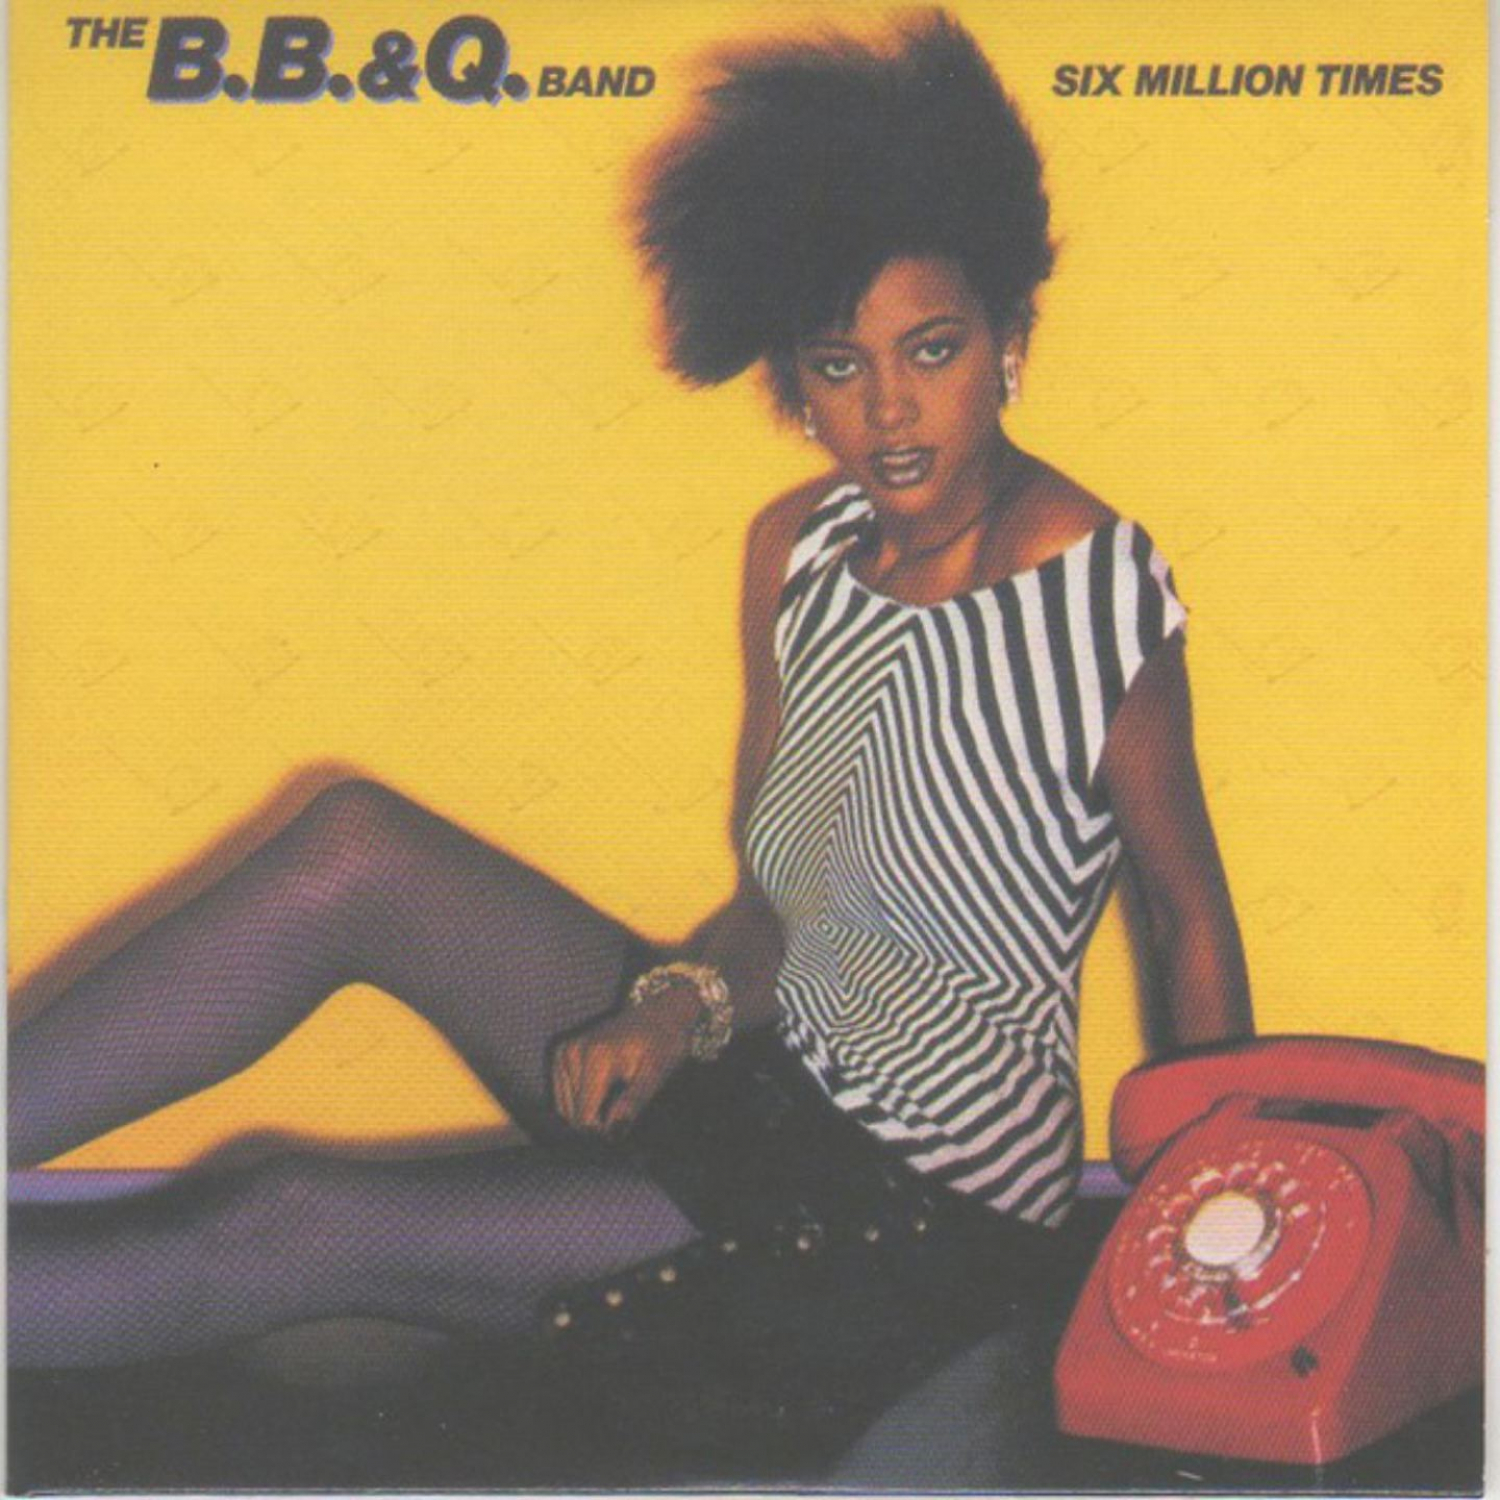 The B. B. & Q. Band - Downtowne (Original Mix)